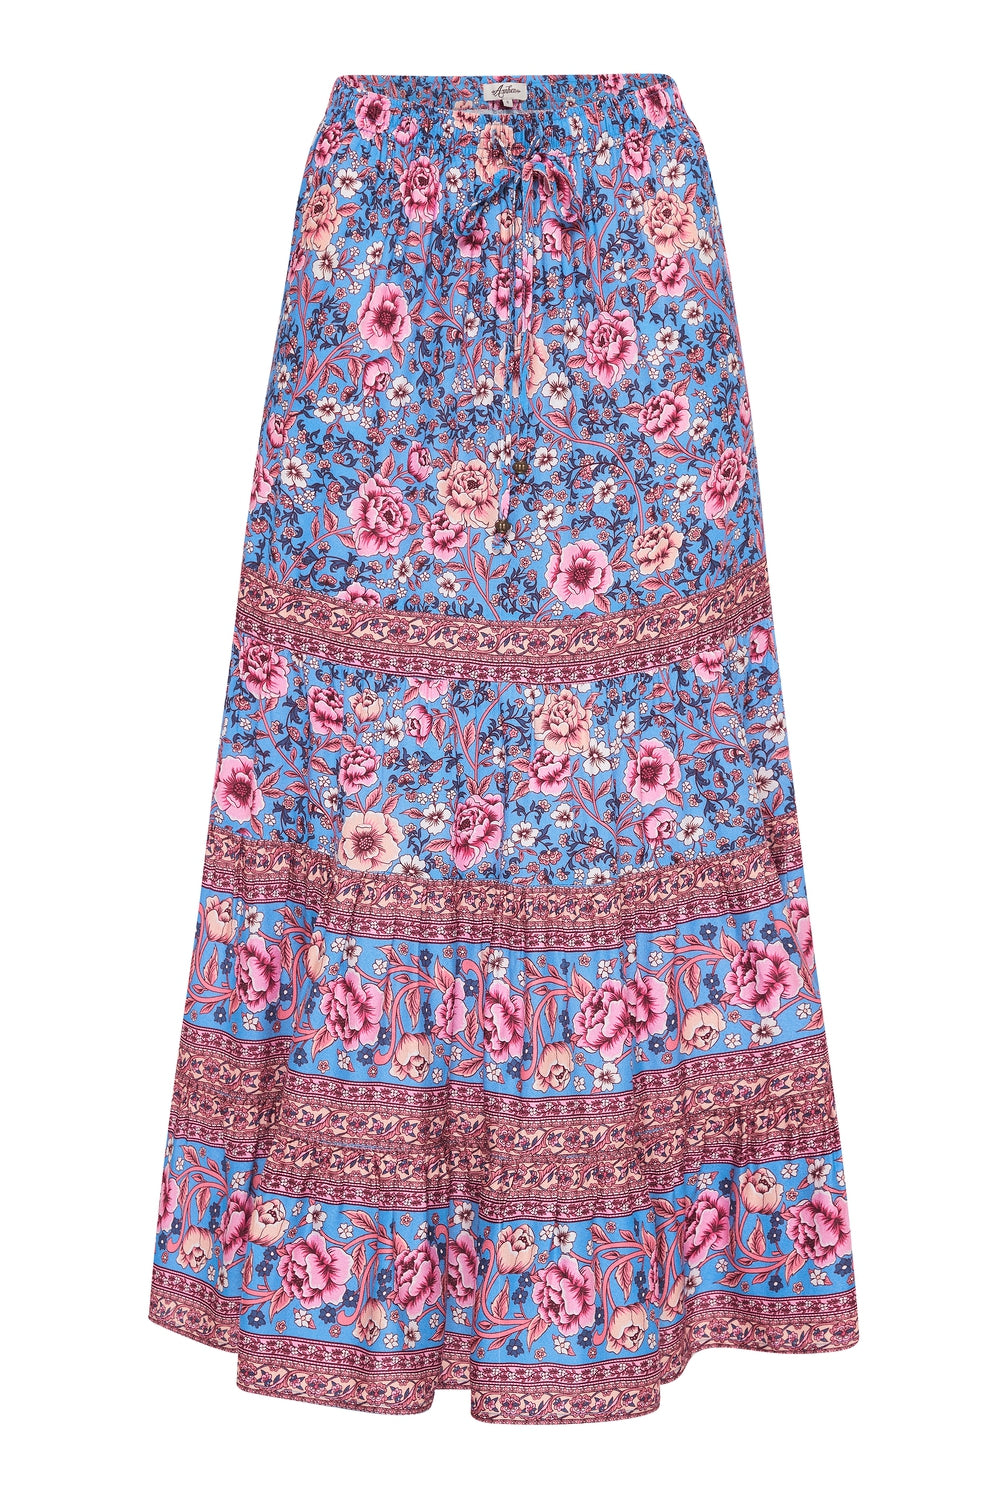 Juliette Midi Skirt in Bluebelle